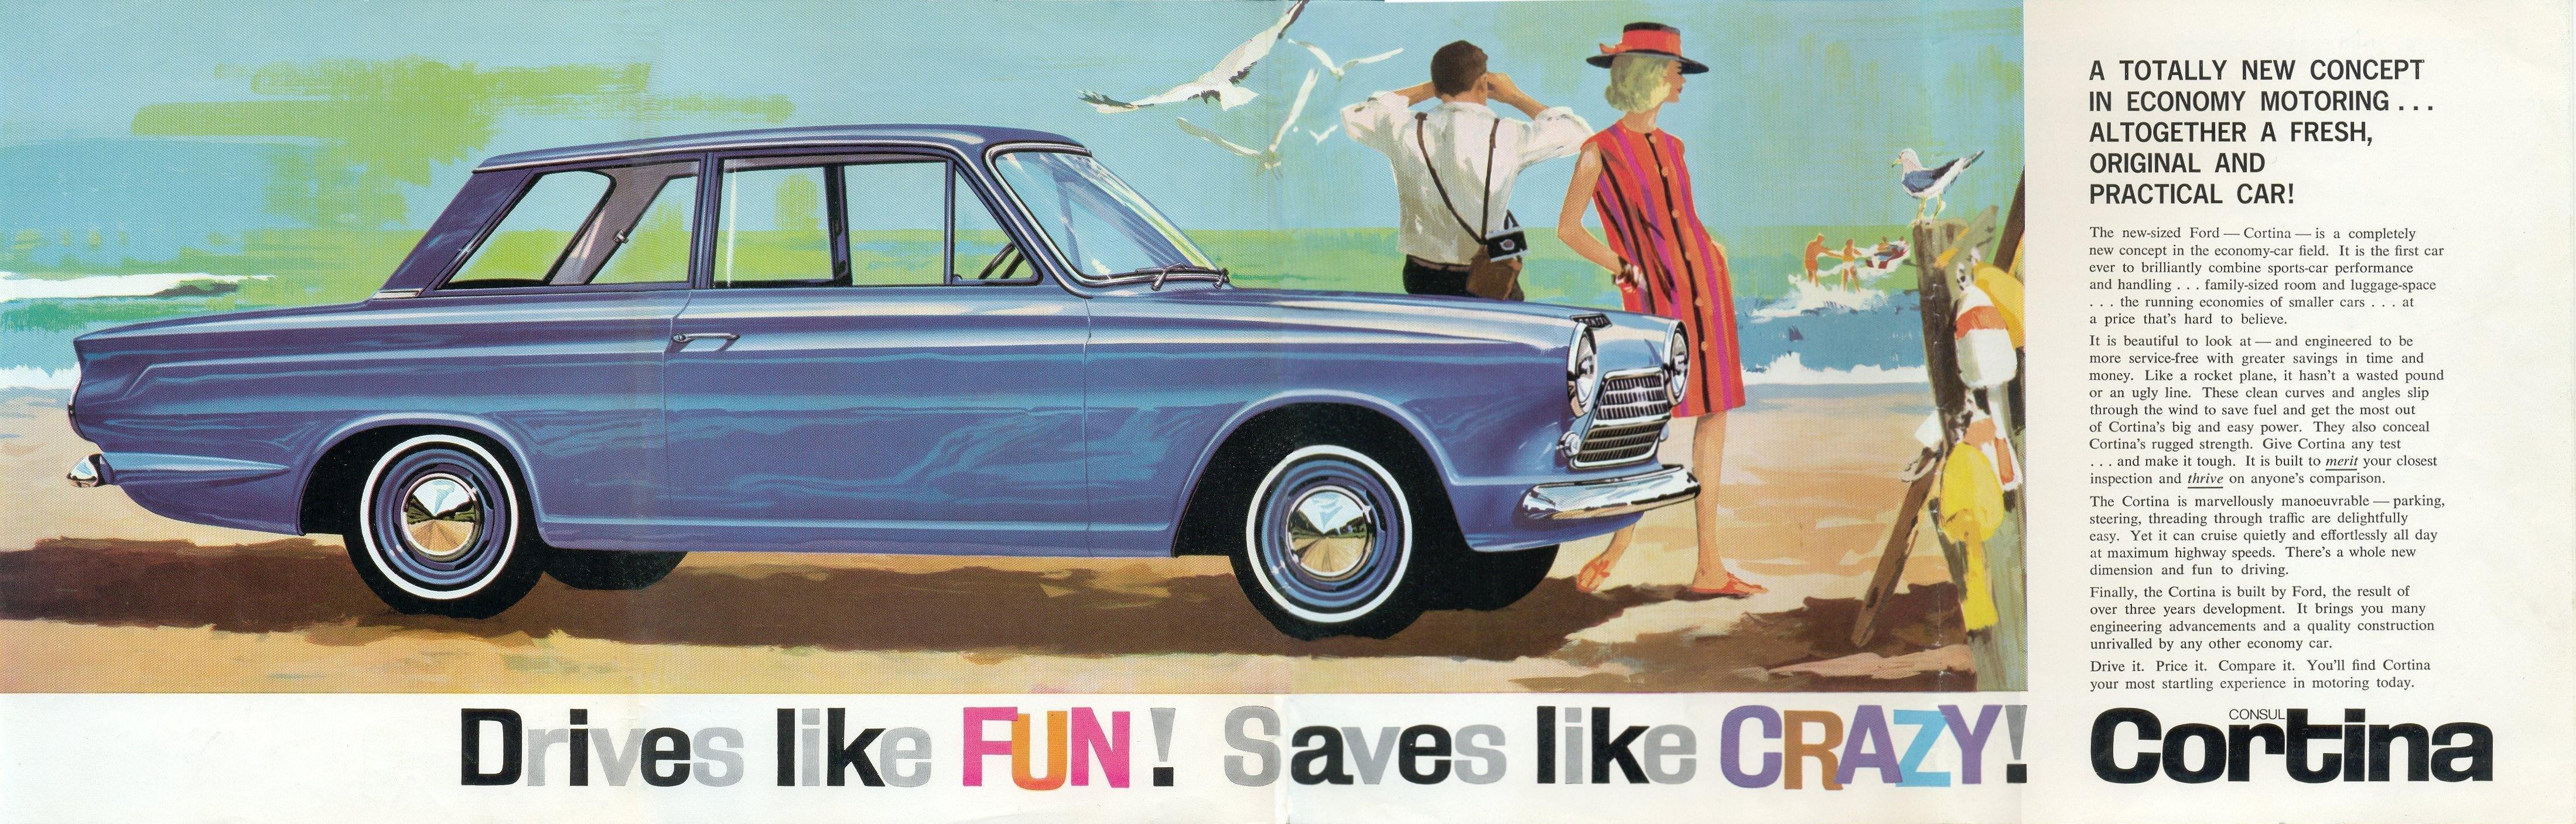 Groovy Australian Ford Cortina ad from 1963.